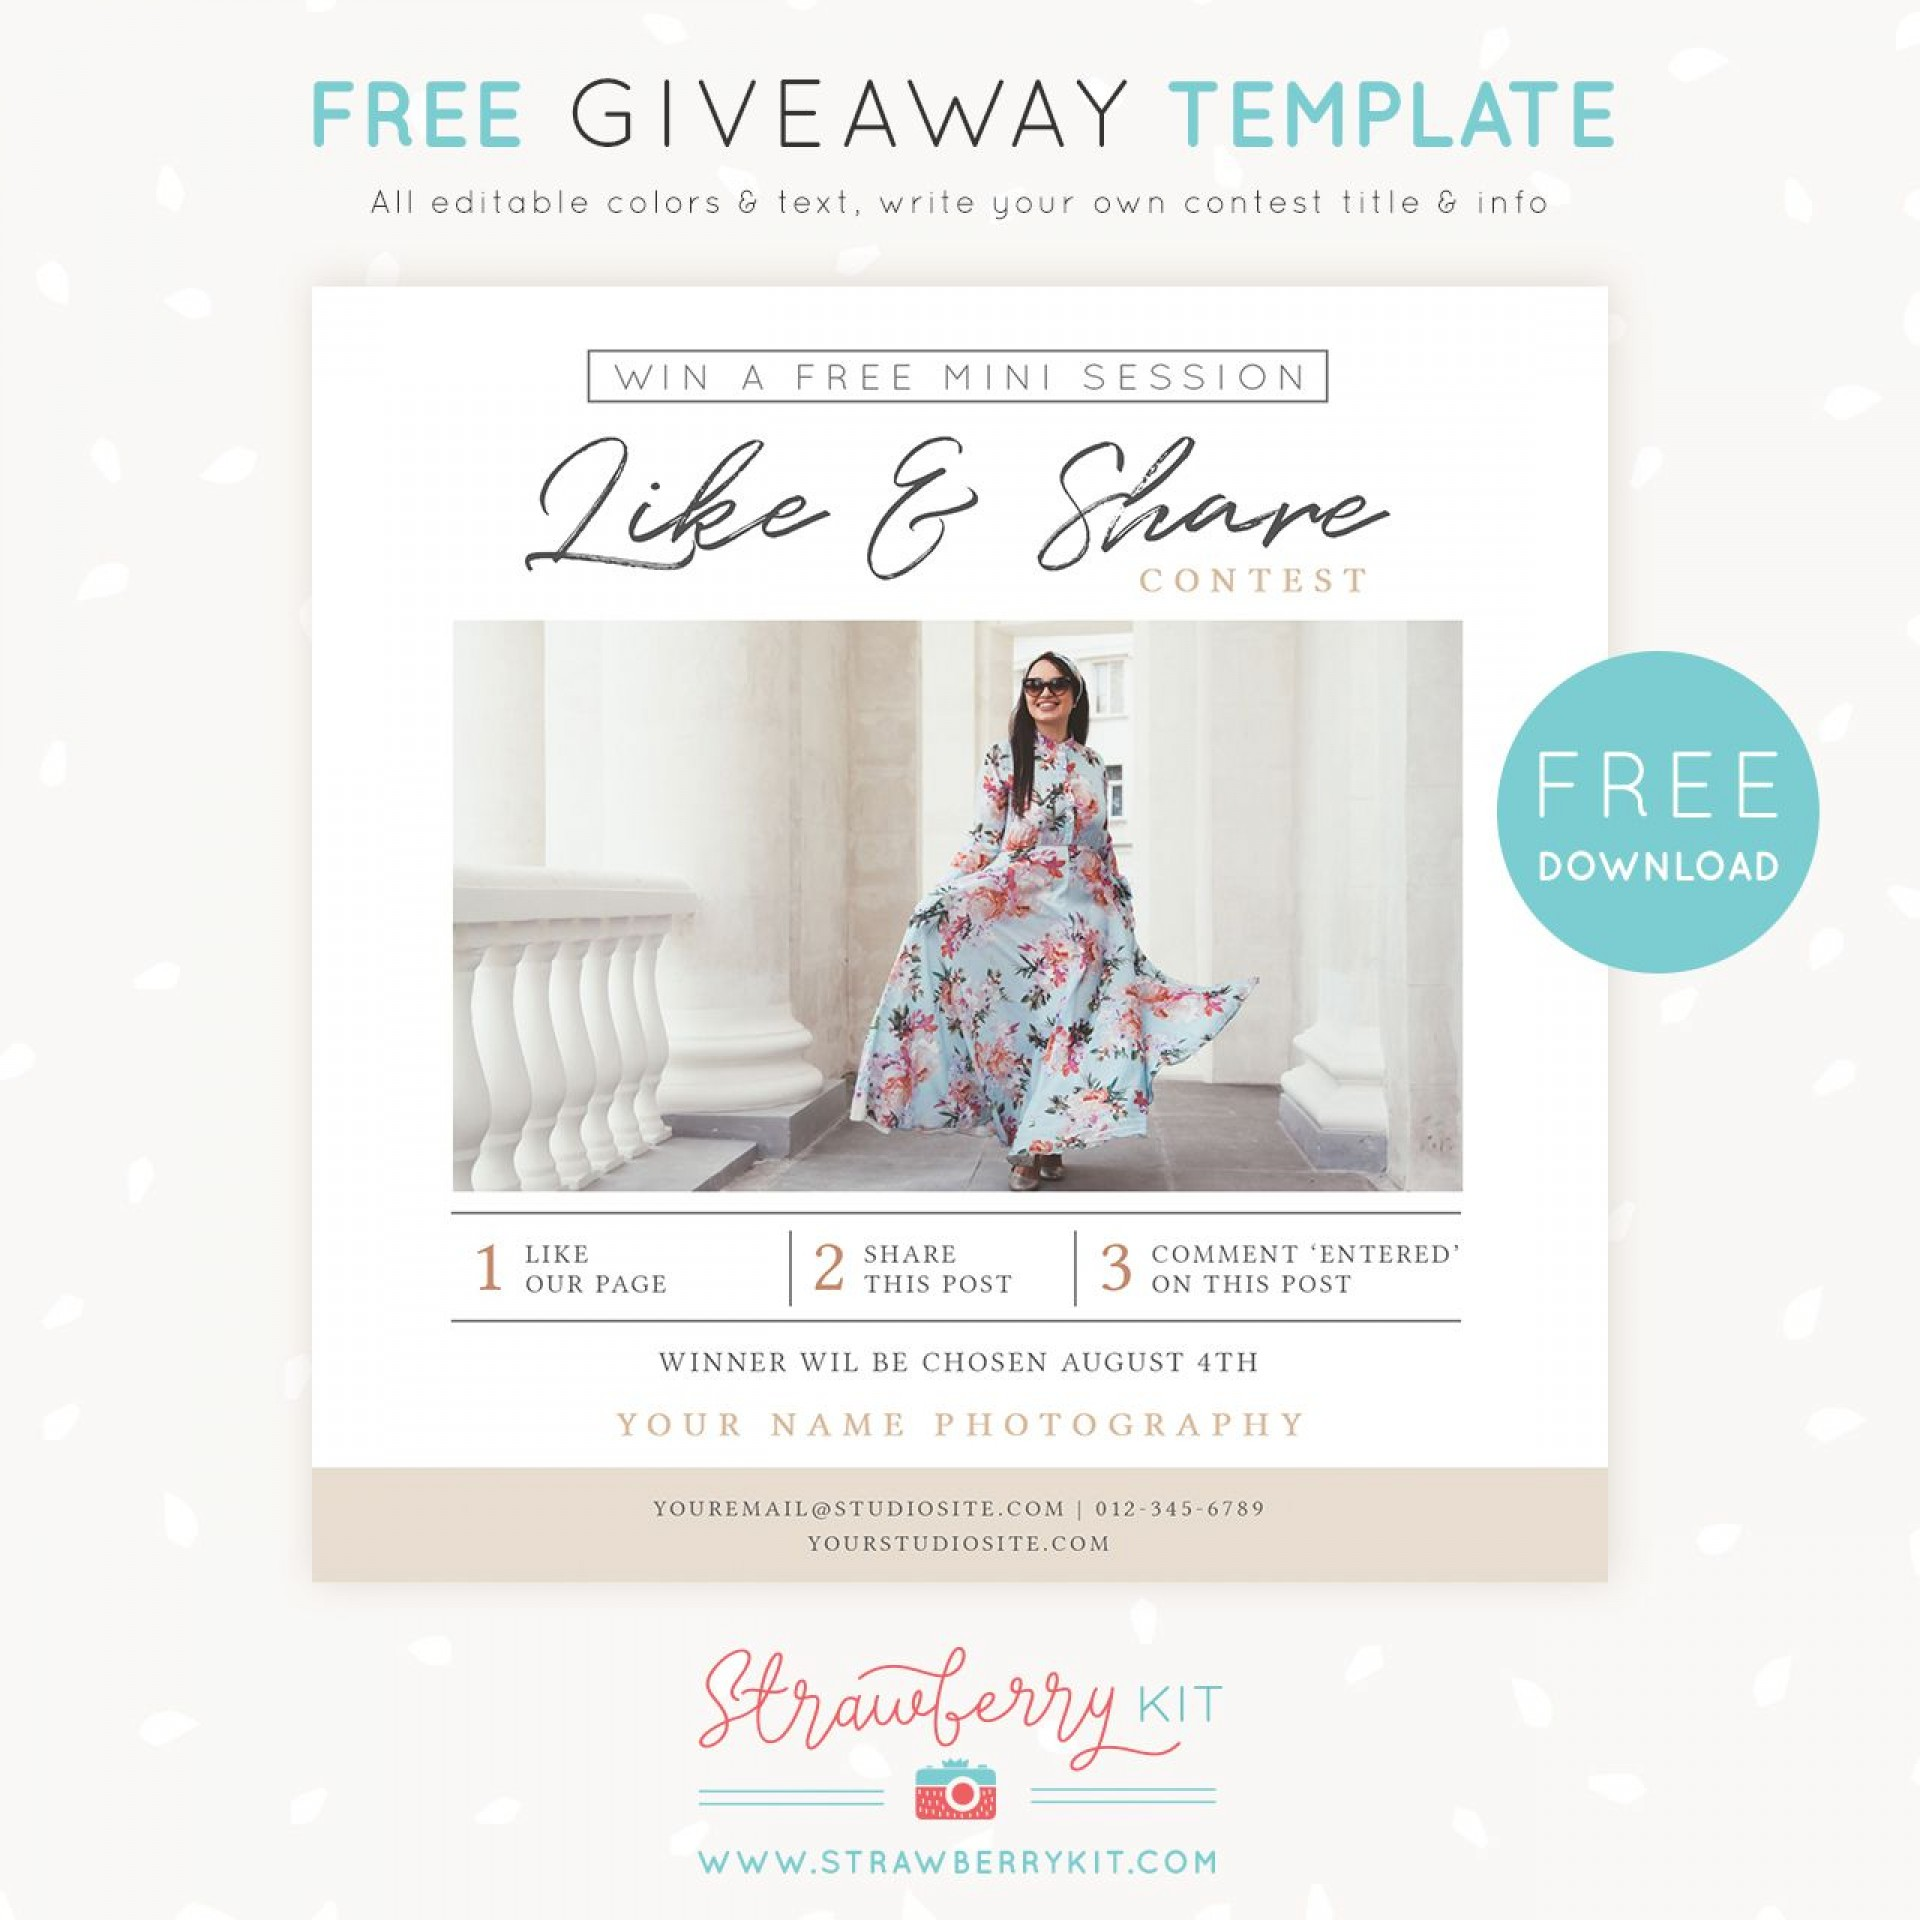 008 Excellent Free Photography Marketing Template Image  Templates Senior1920